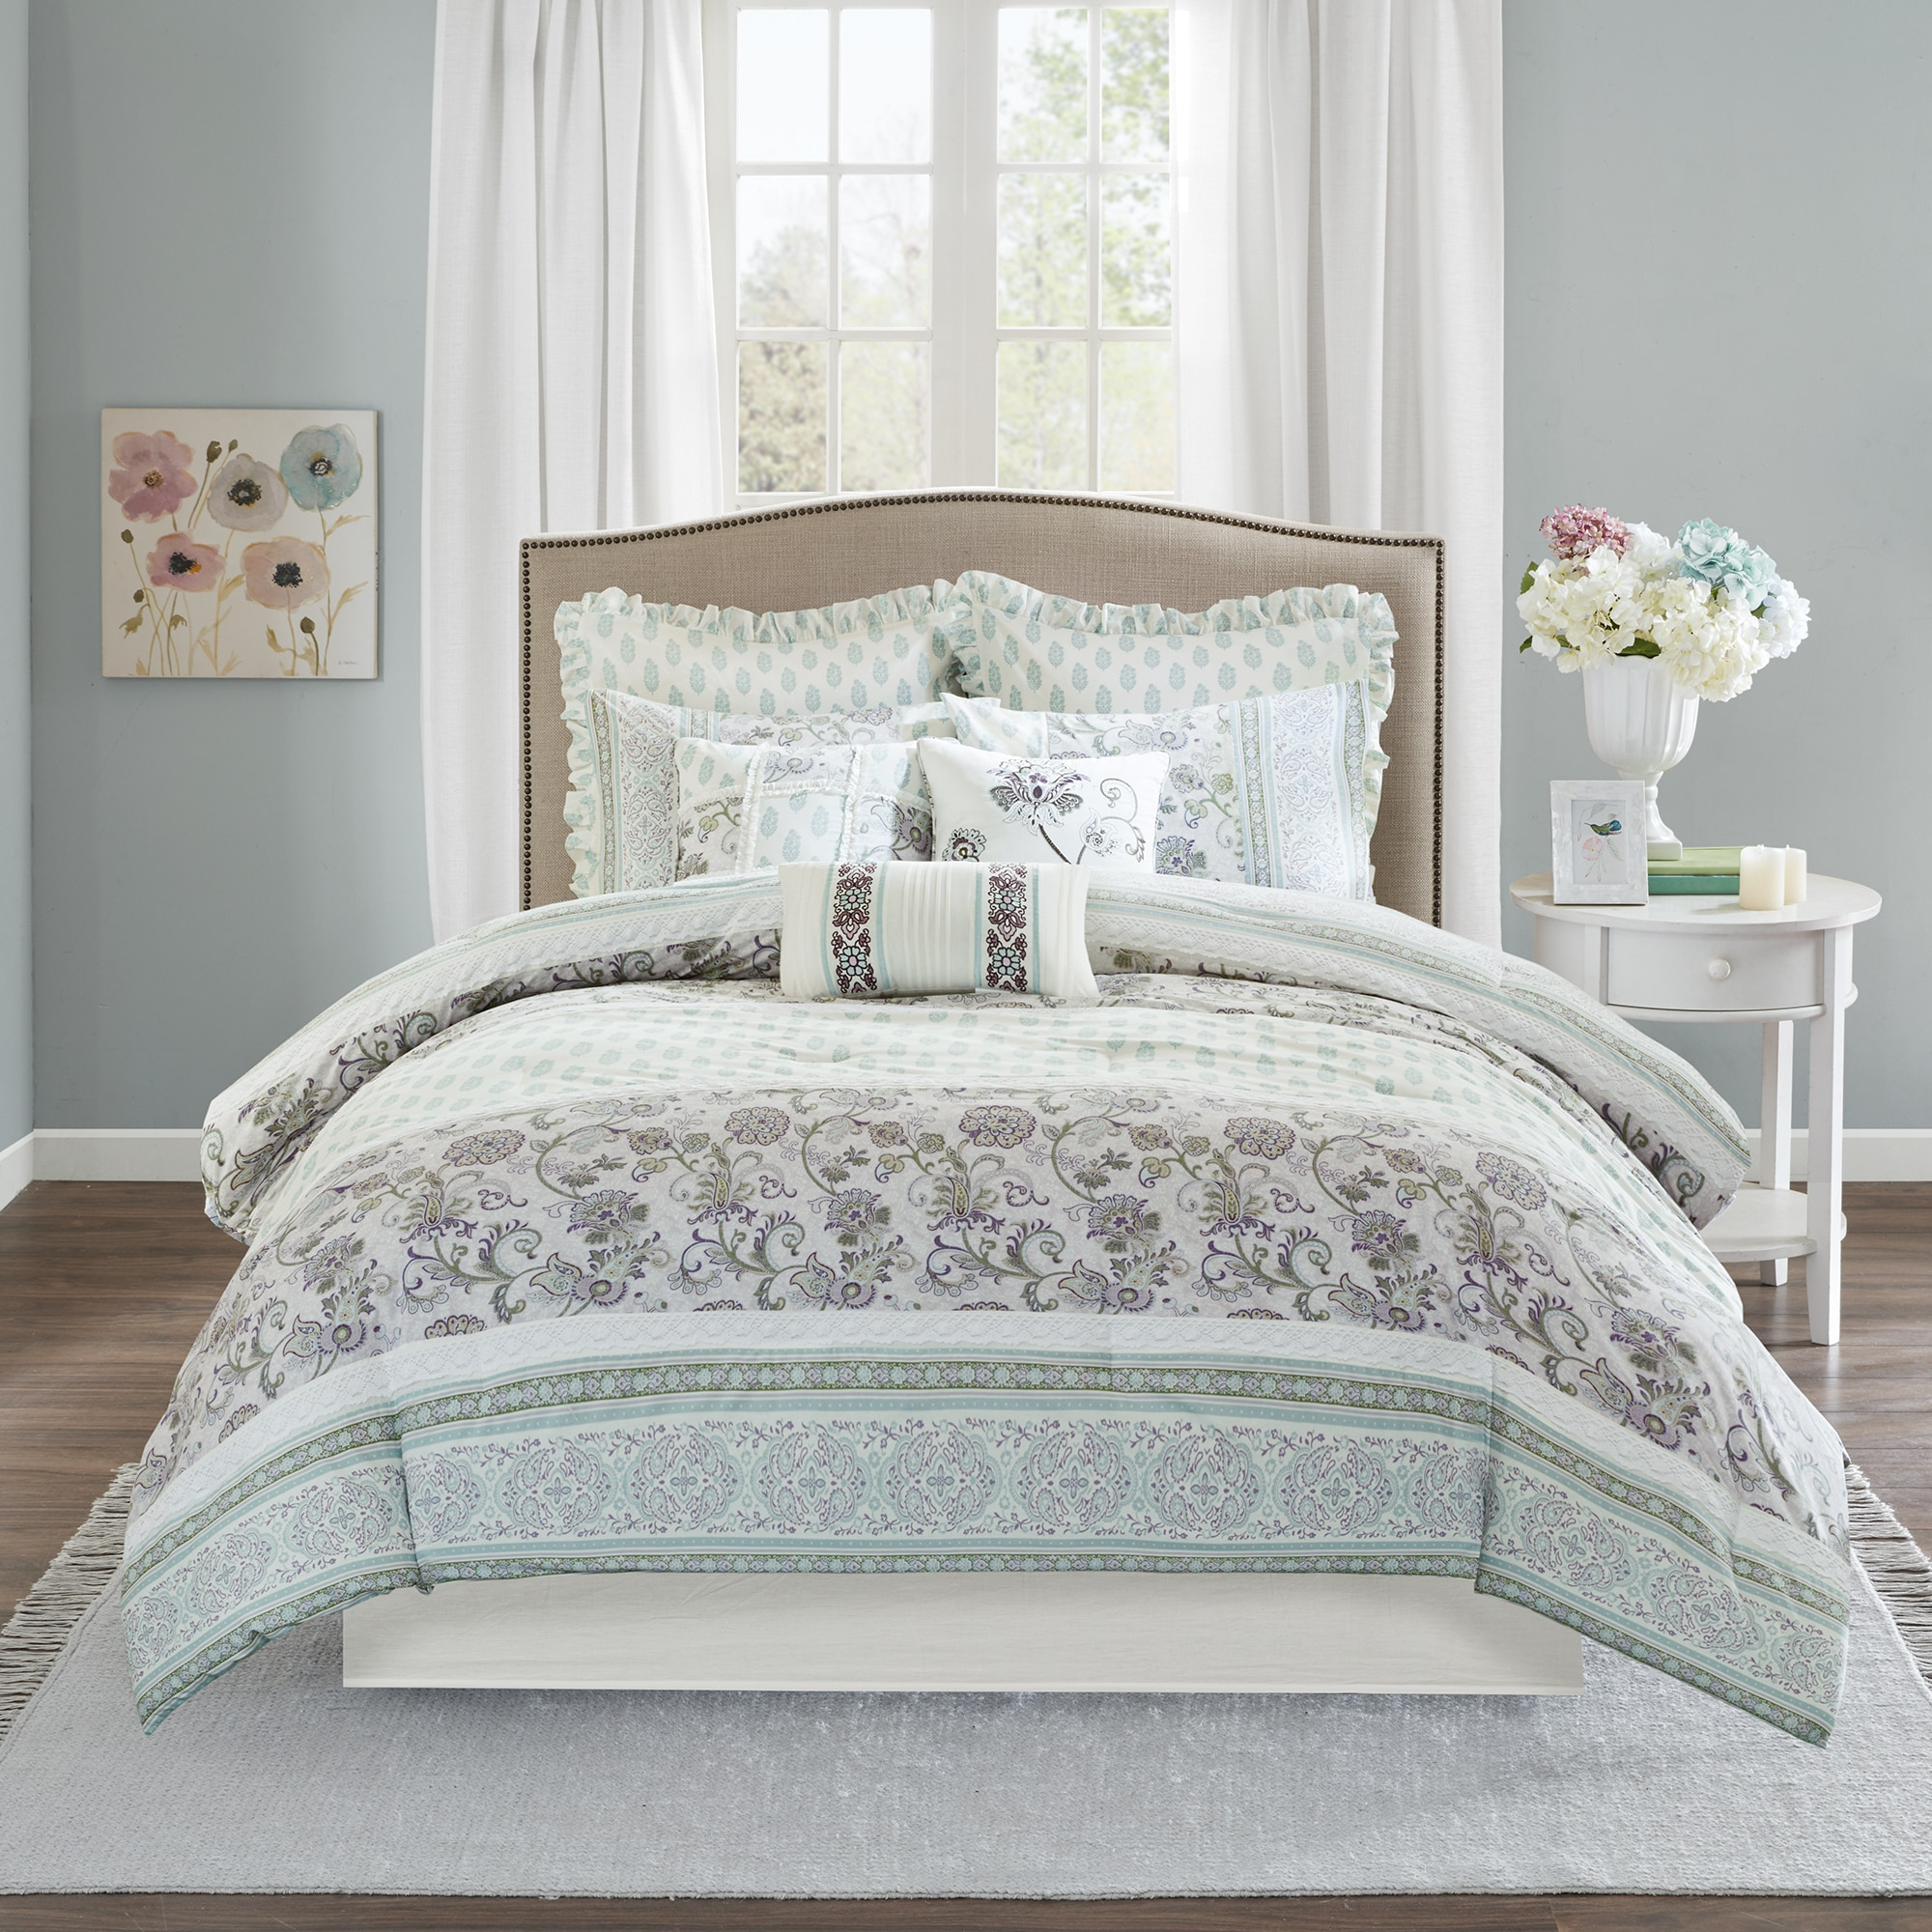 reviews willa pdx wayfair bath arlo interiors piece comforter bed gavril set